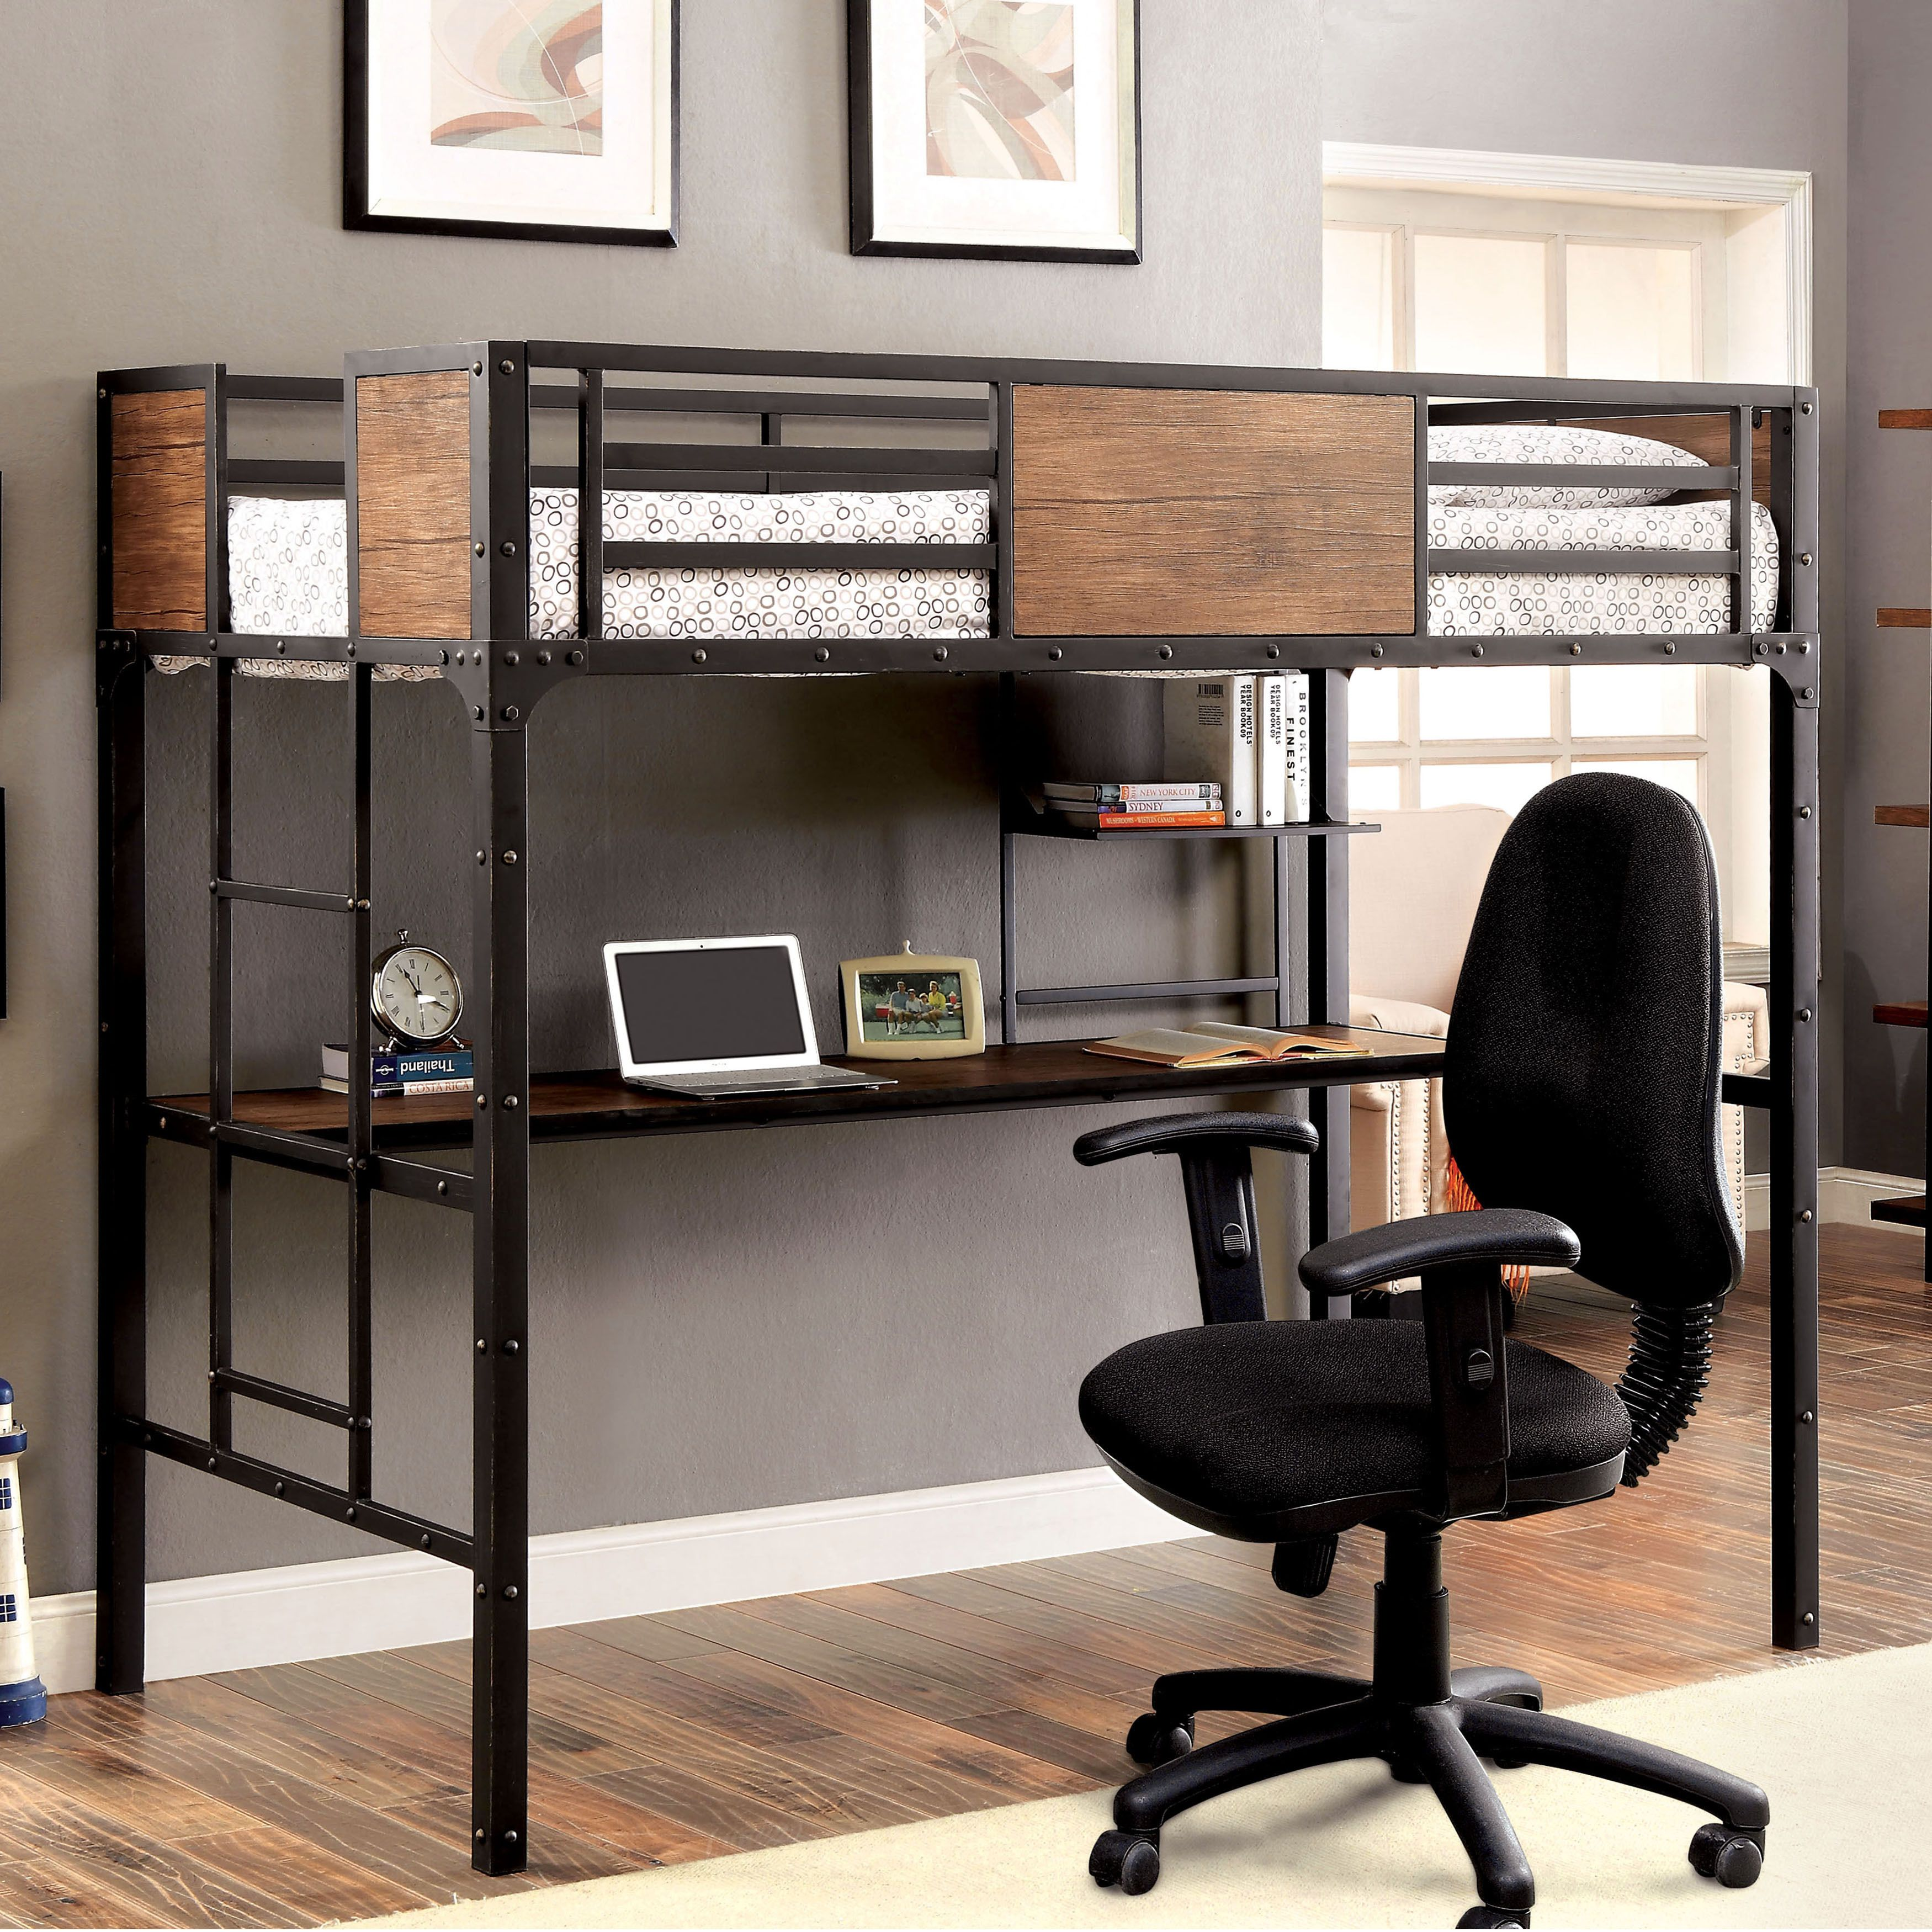 of new bunk luxury bed ideas kids plans love beds desks combo wood will free loft amp the desk